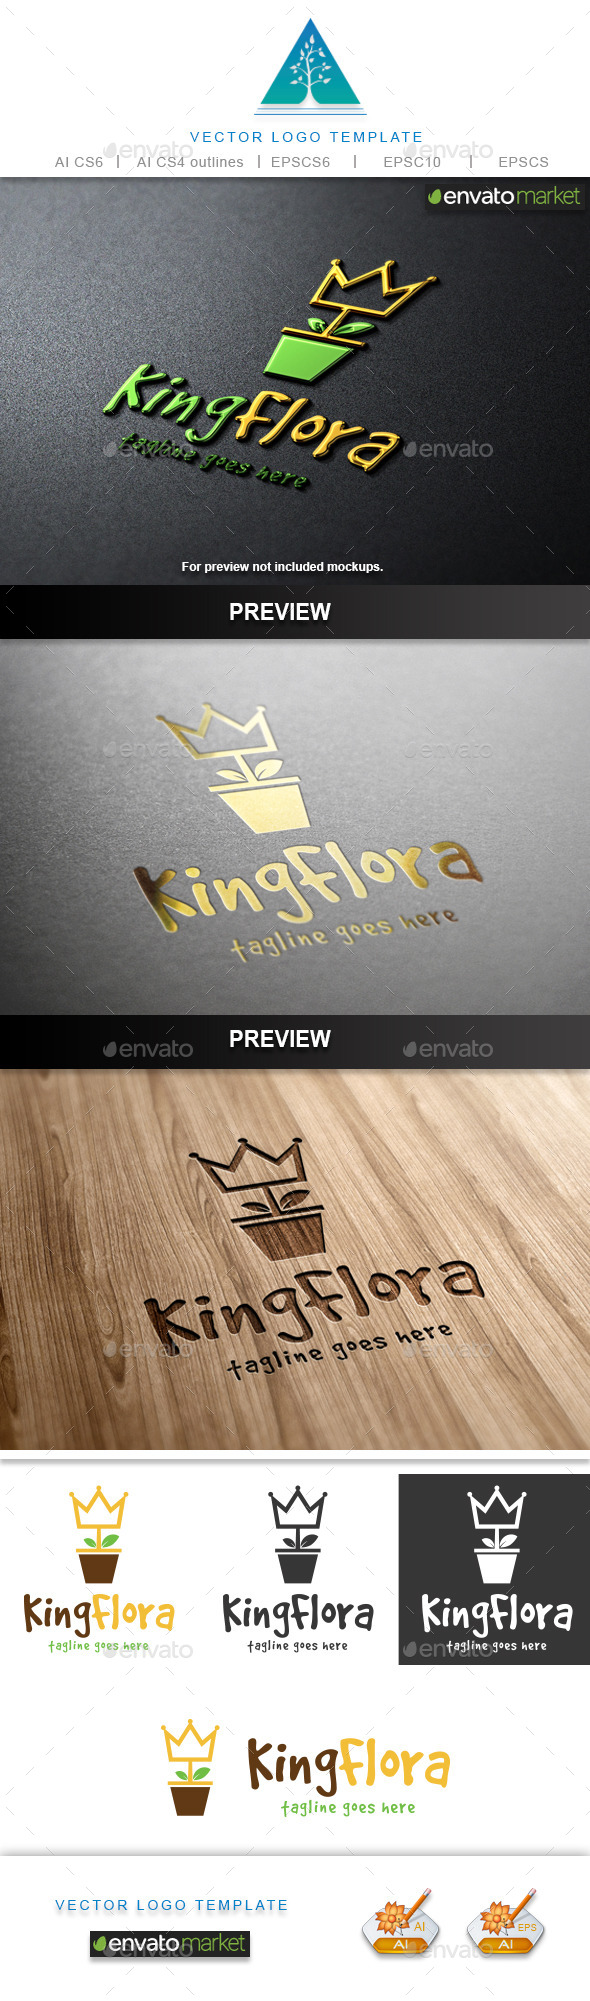 GraphicRiver King Flora Logo 9747201